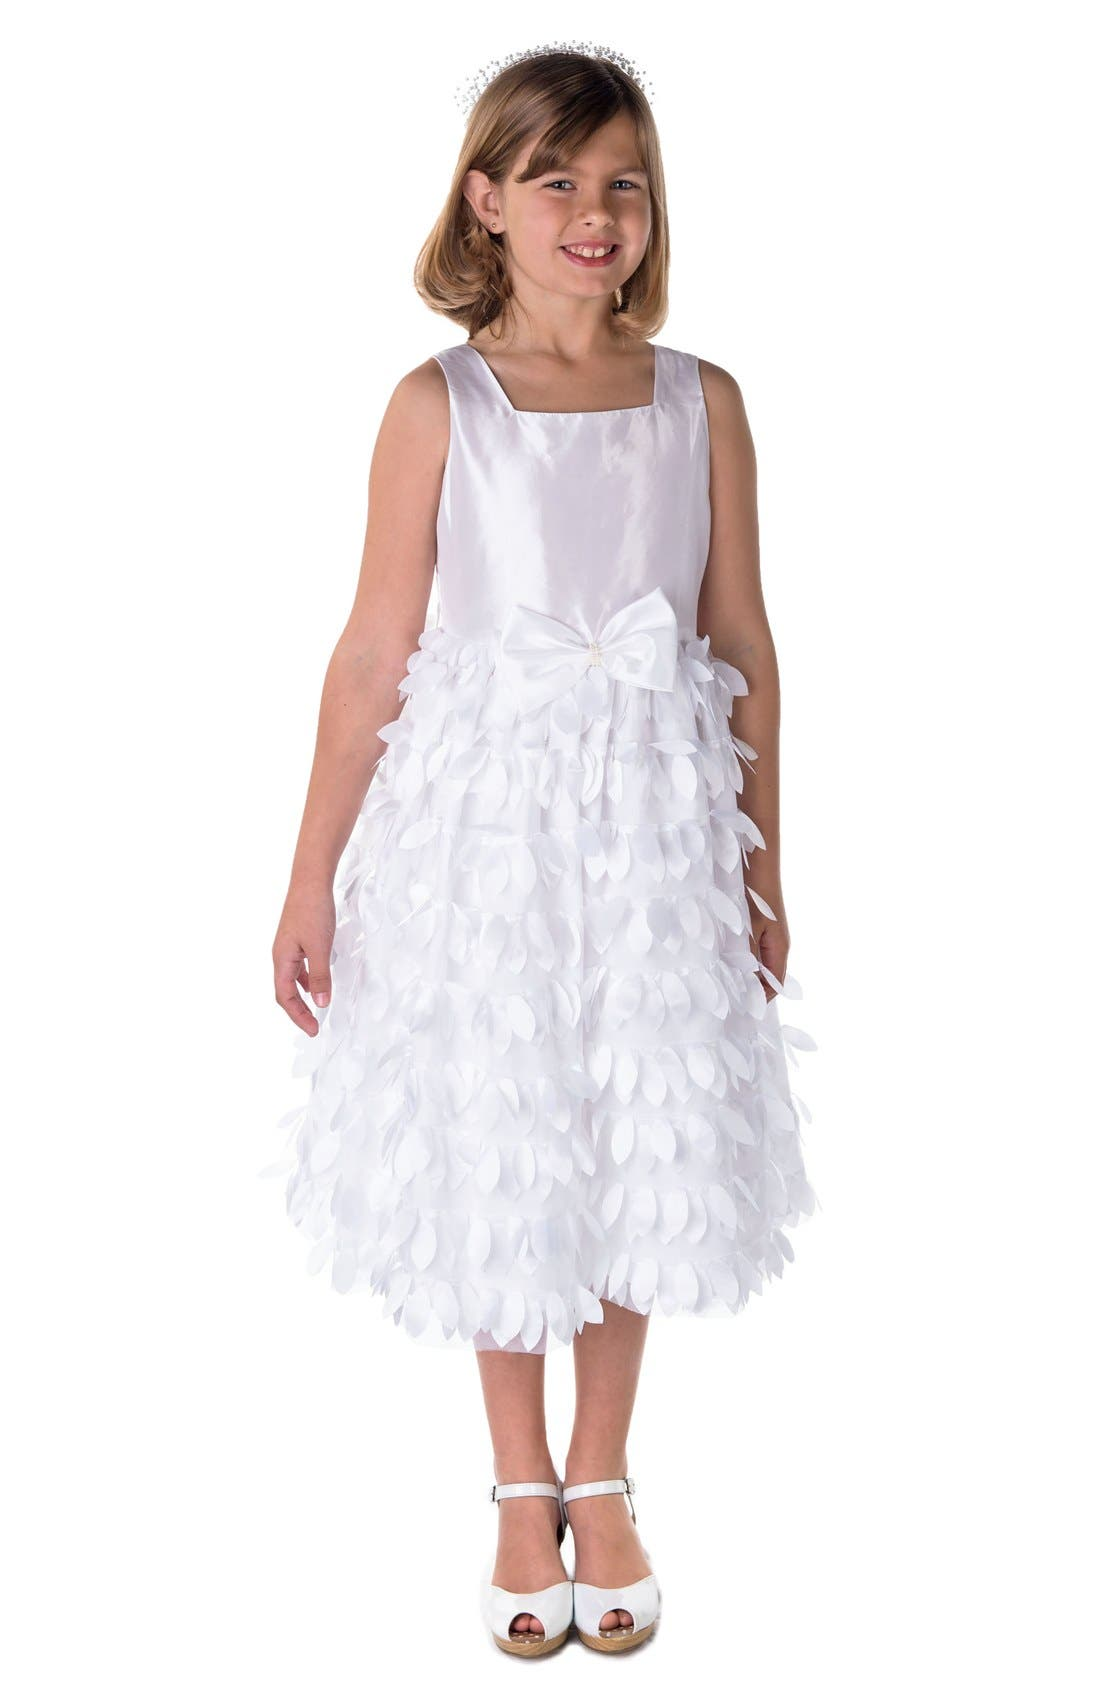 Sorbet 'Petal' Taffeta Flower Girl Dress (Toddler Girls, Little Girls & Big Girls)